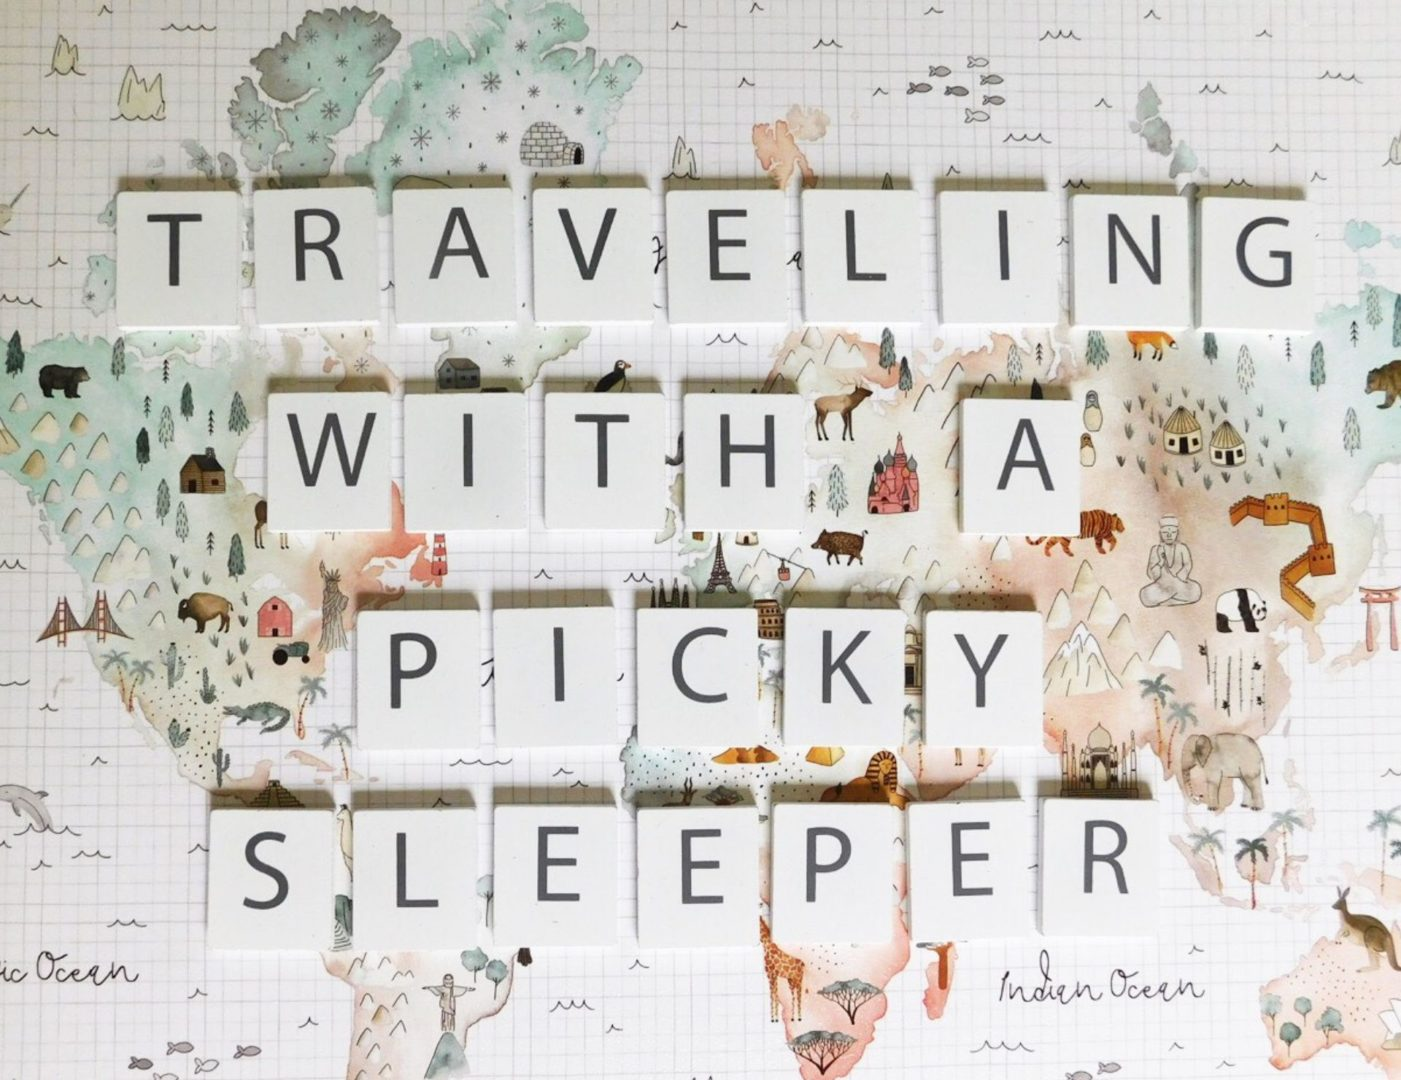 Traveling with a picky sleeper - Erica Parachini for Nesting Story